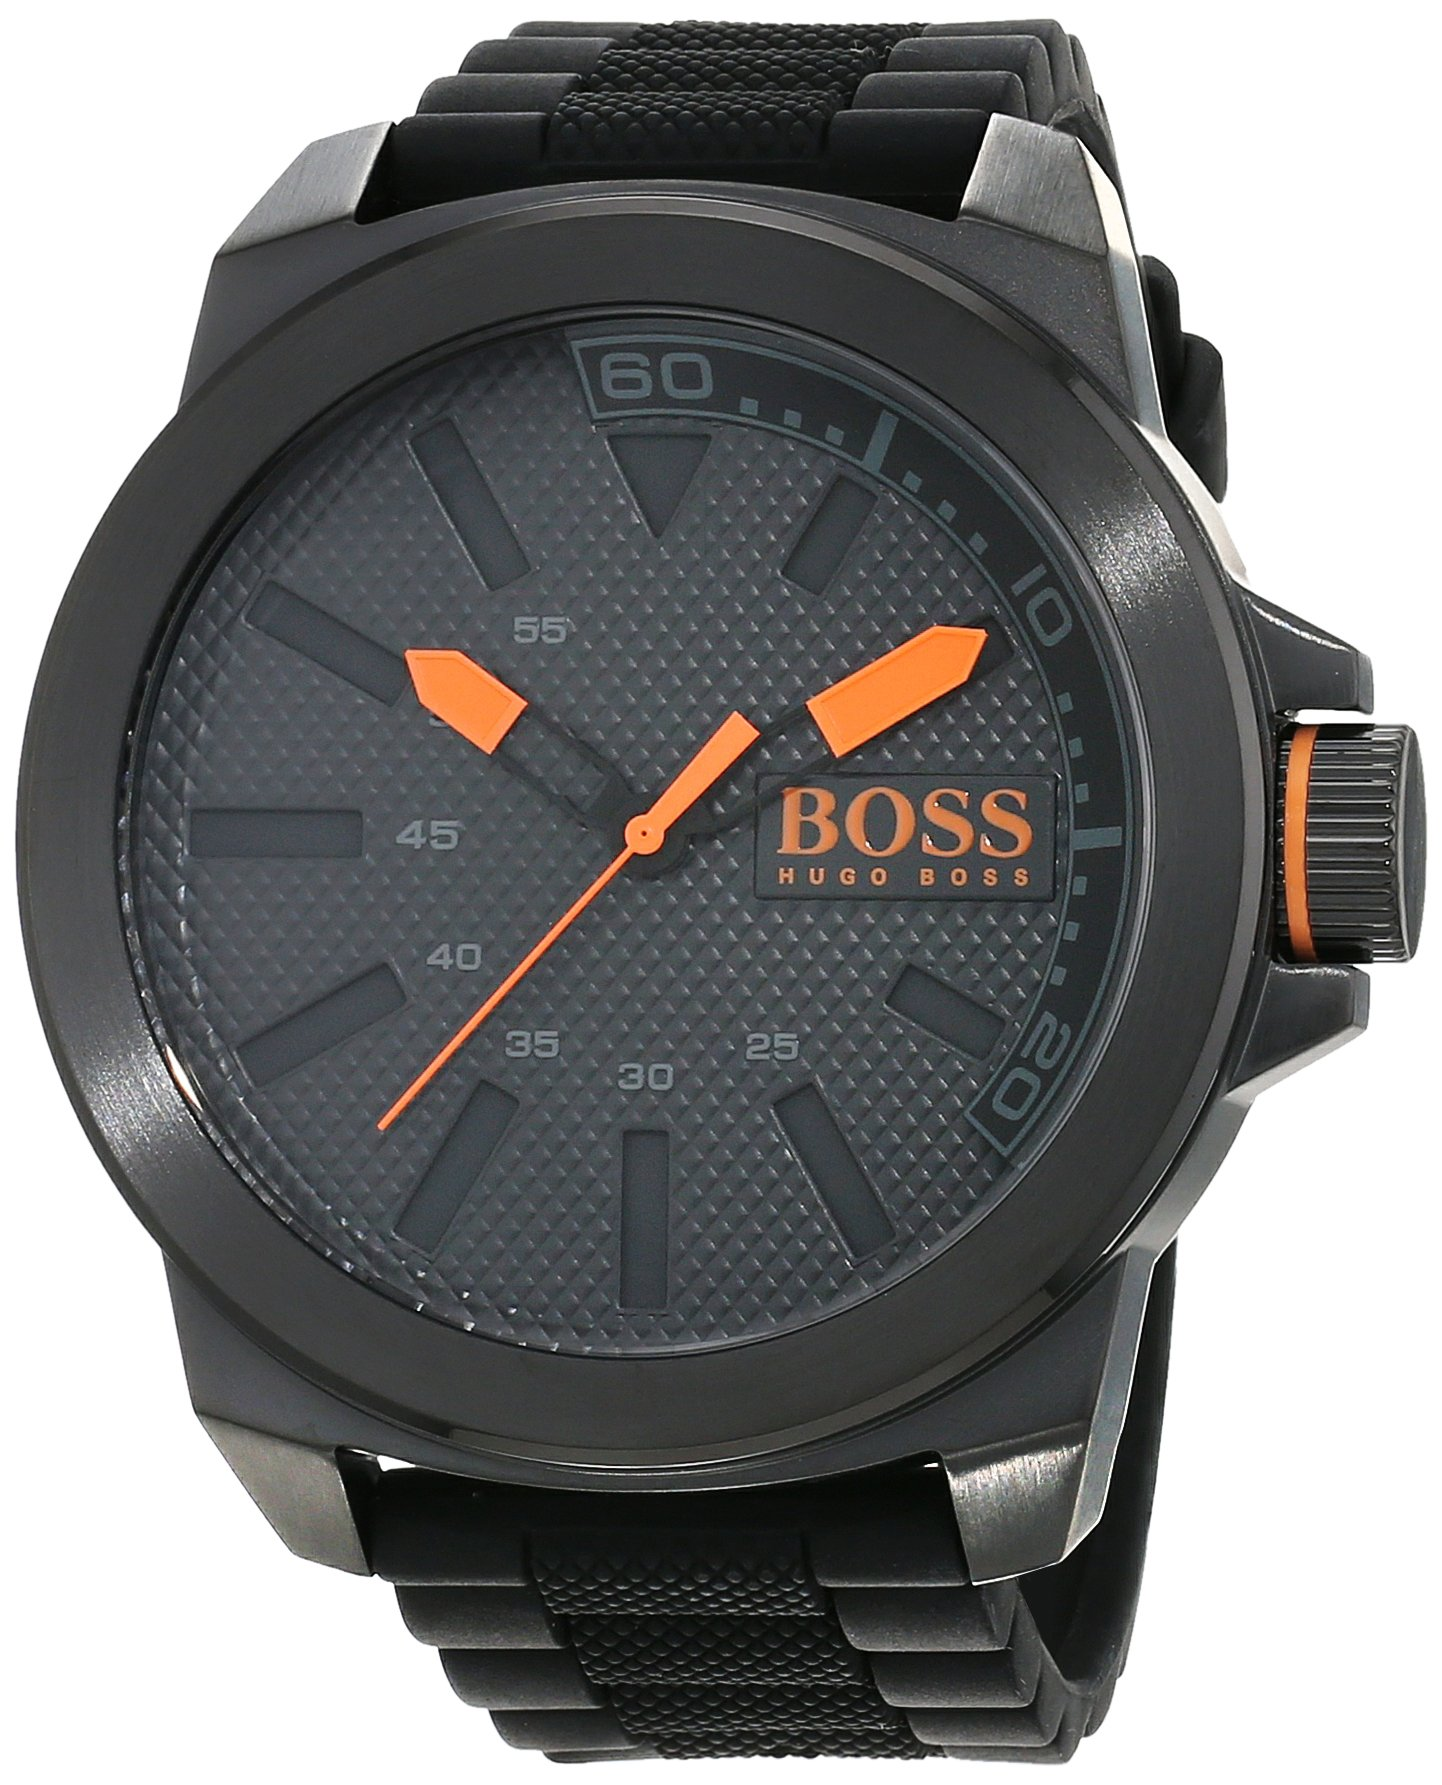 Hugo Boss Orange New York Herren-Armbanduhr Quartz mit schwarzem Silikon Armband 1513004 5